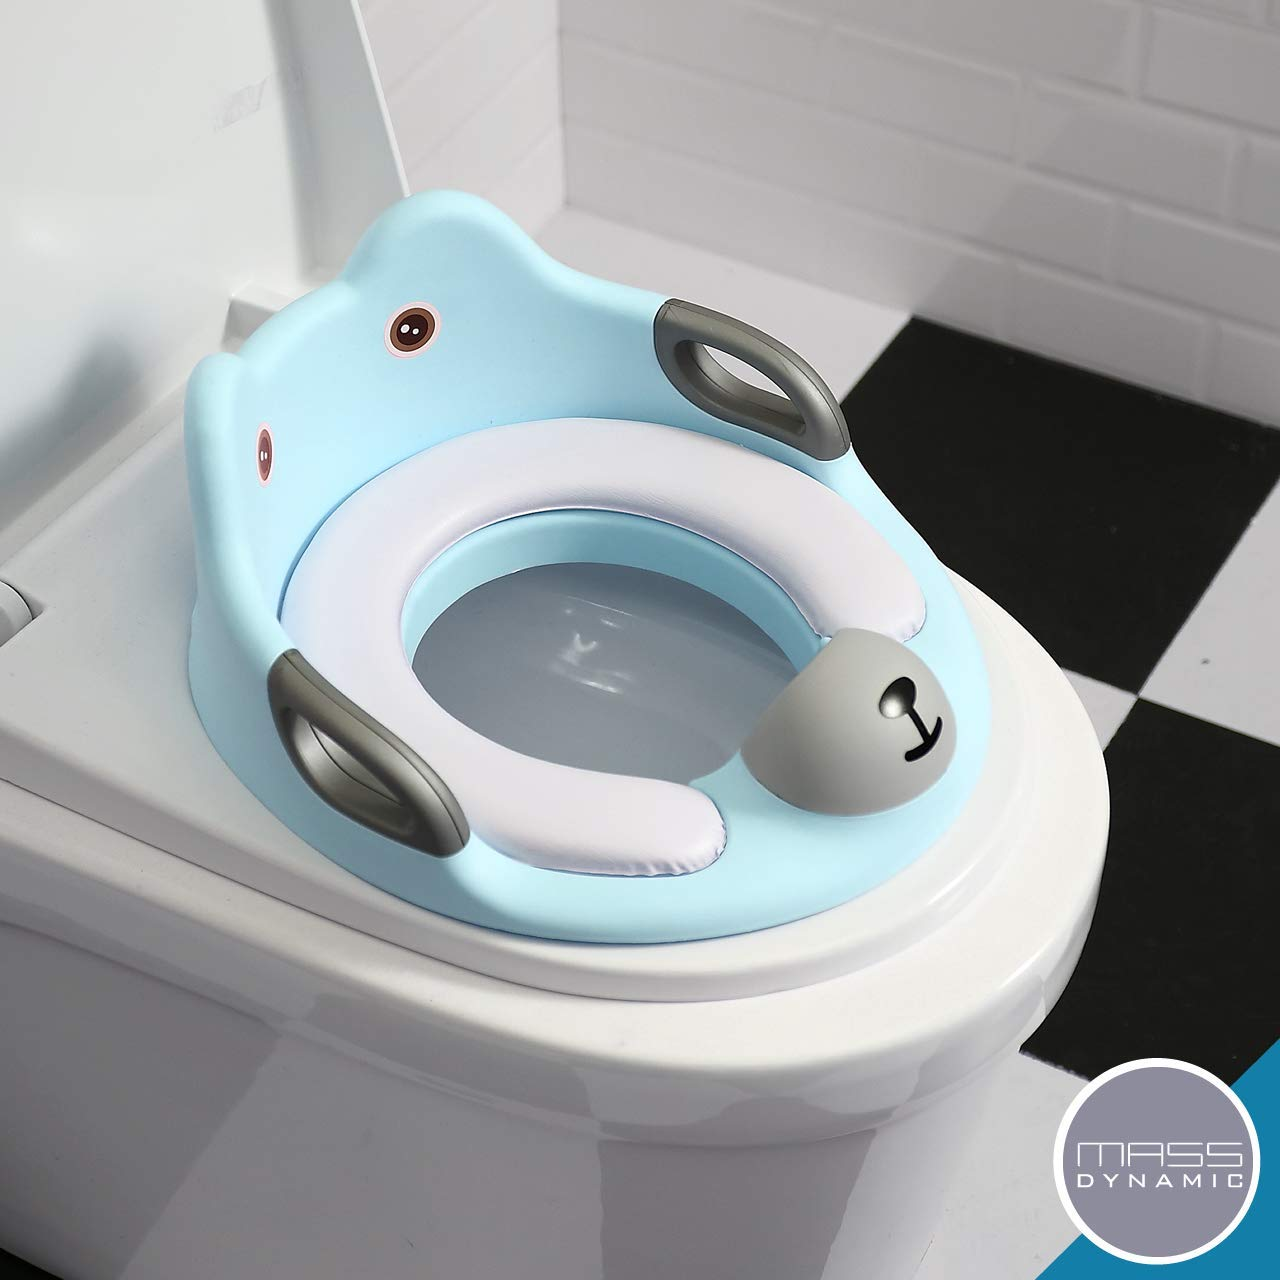 Anti Slipping Baby Seat with Handles White Potty Training Toilet Seat for Kids Toilet Trainer Ring for Boys or Girls